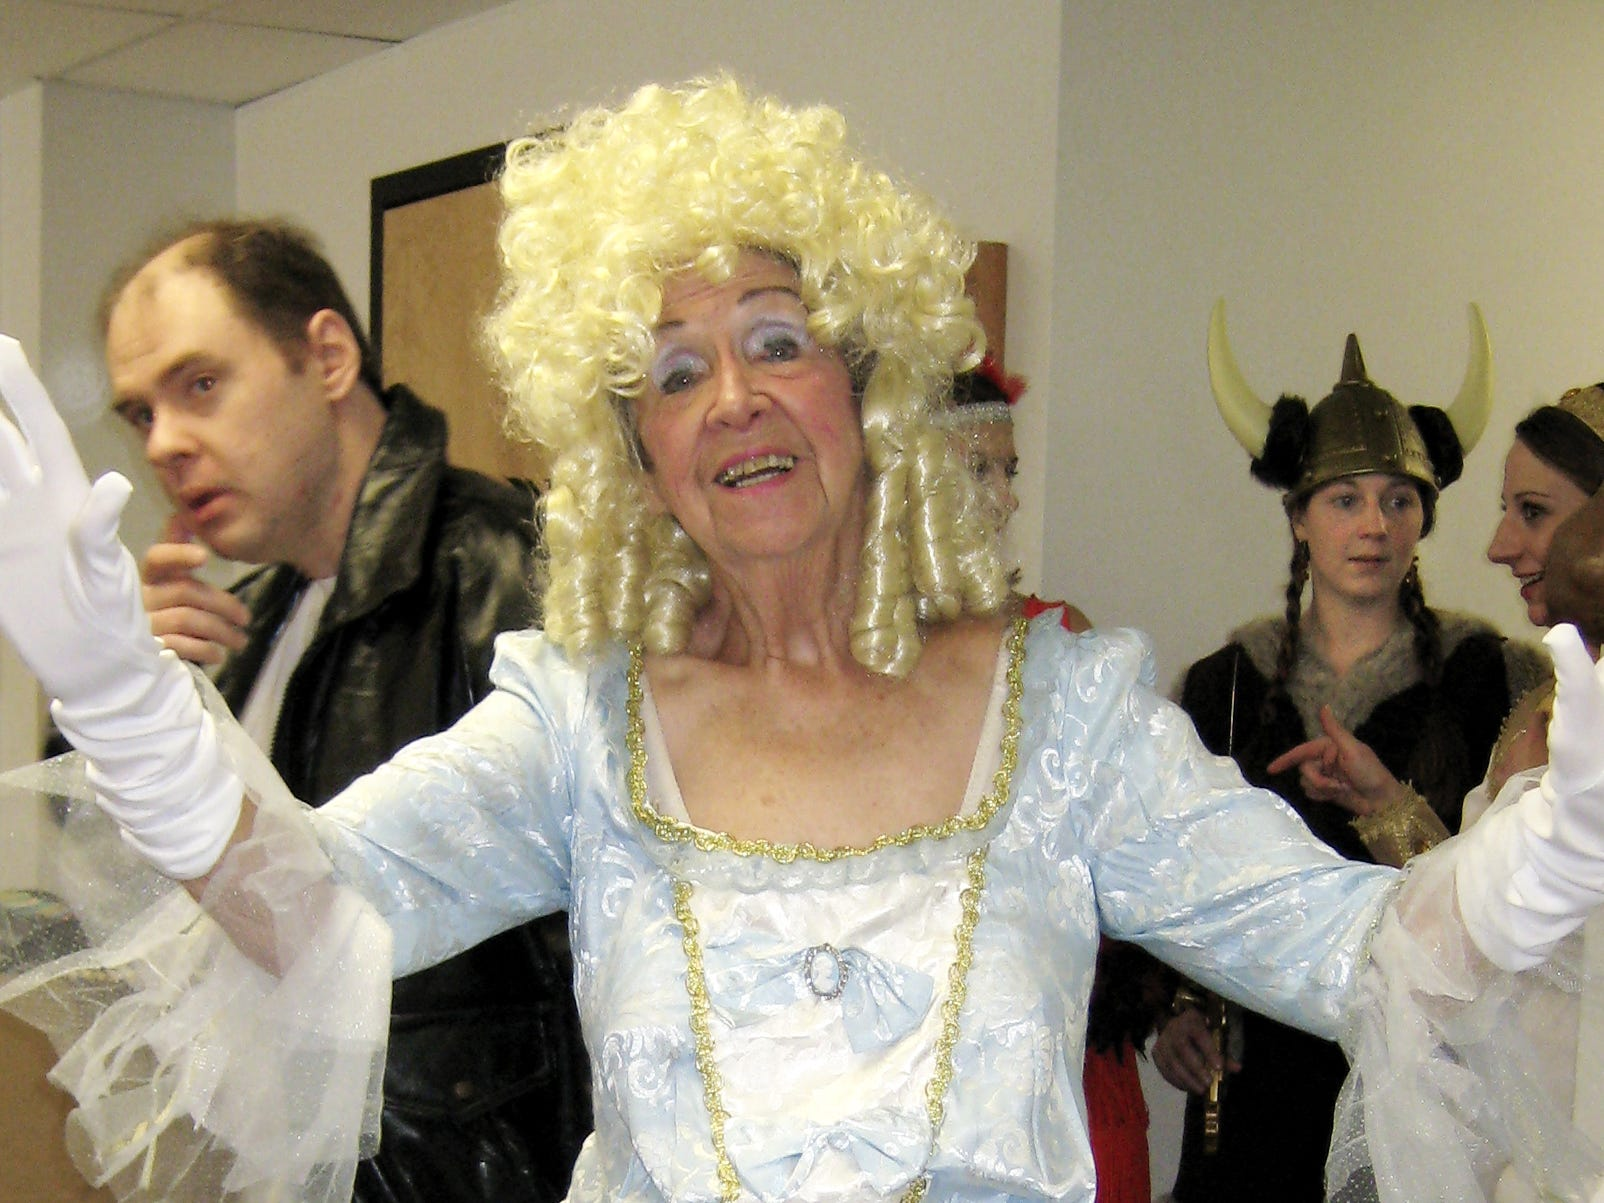 Playing Marie Antoinette (before she lost her head), Patricia Donohue shown in 2007 as part of a Fall Fashion Show offered by Mental Health Association of the Southern Tier.